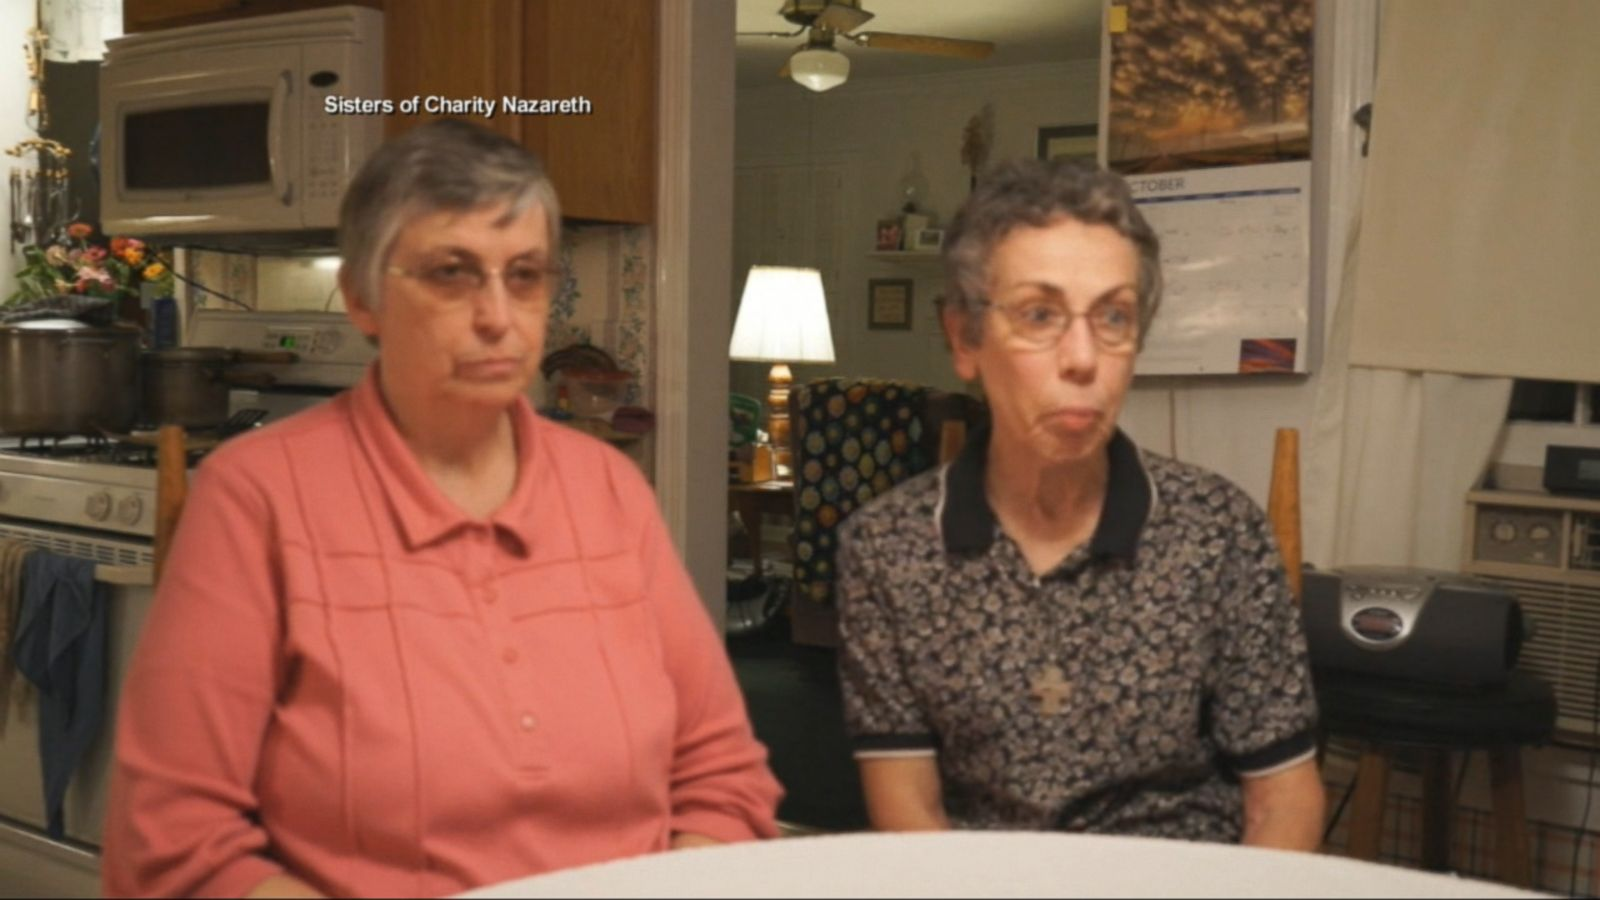 Two Catholic nuns were found dead in their Mississippi home on Thursday.